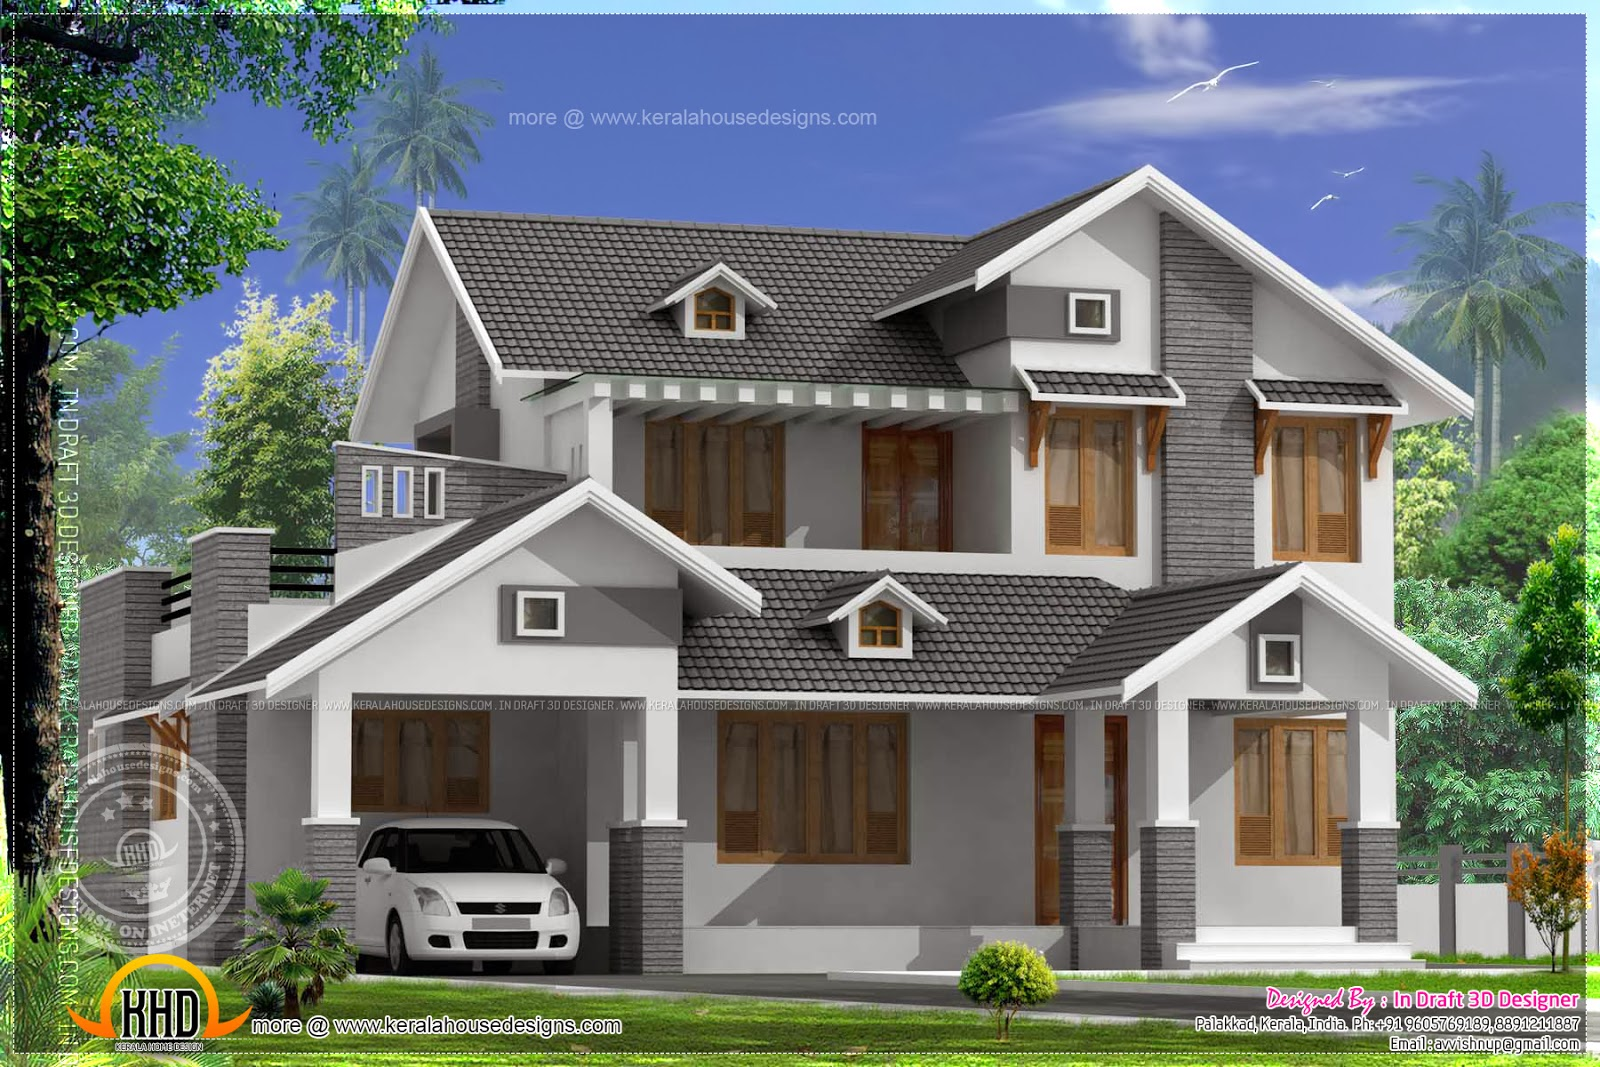 Roof Design Ideas: 2367 Square Feet Sloping Roof Home